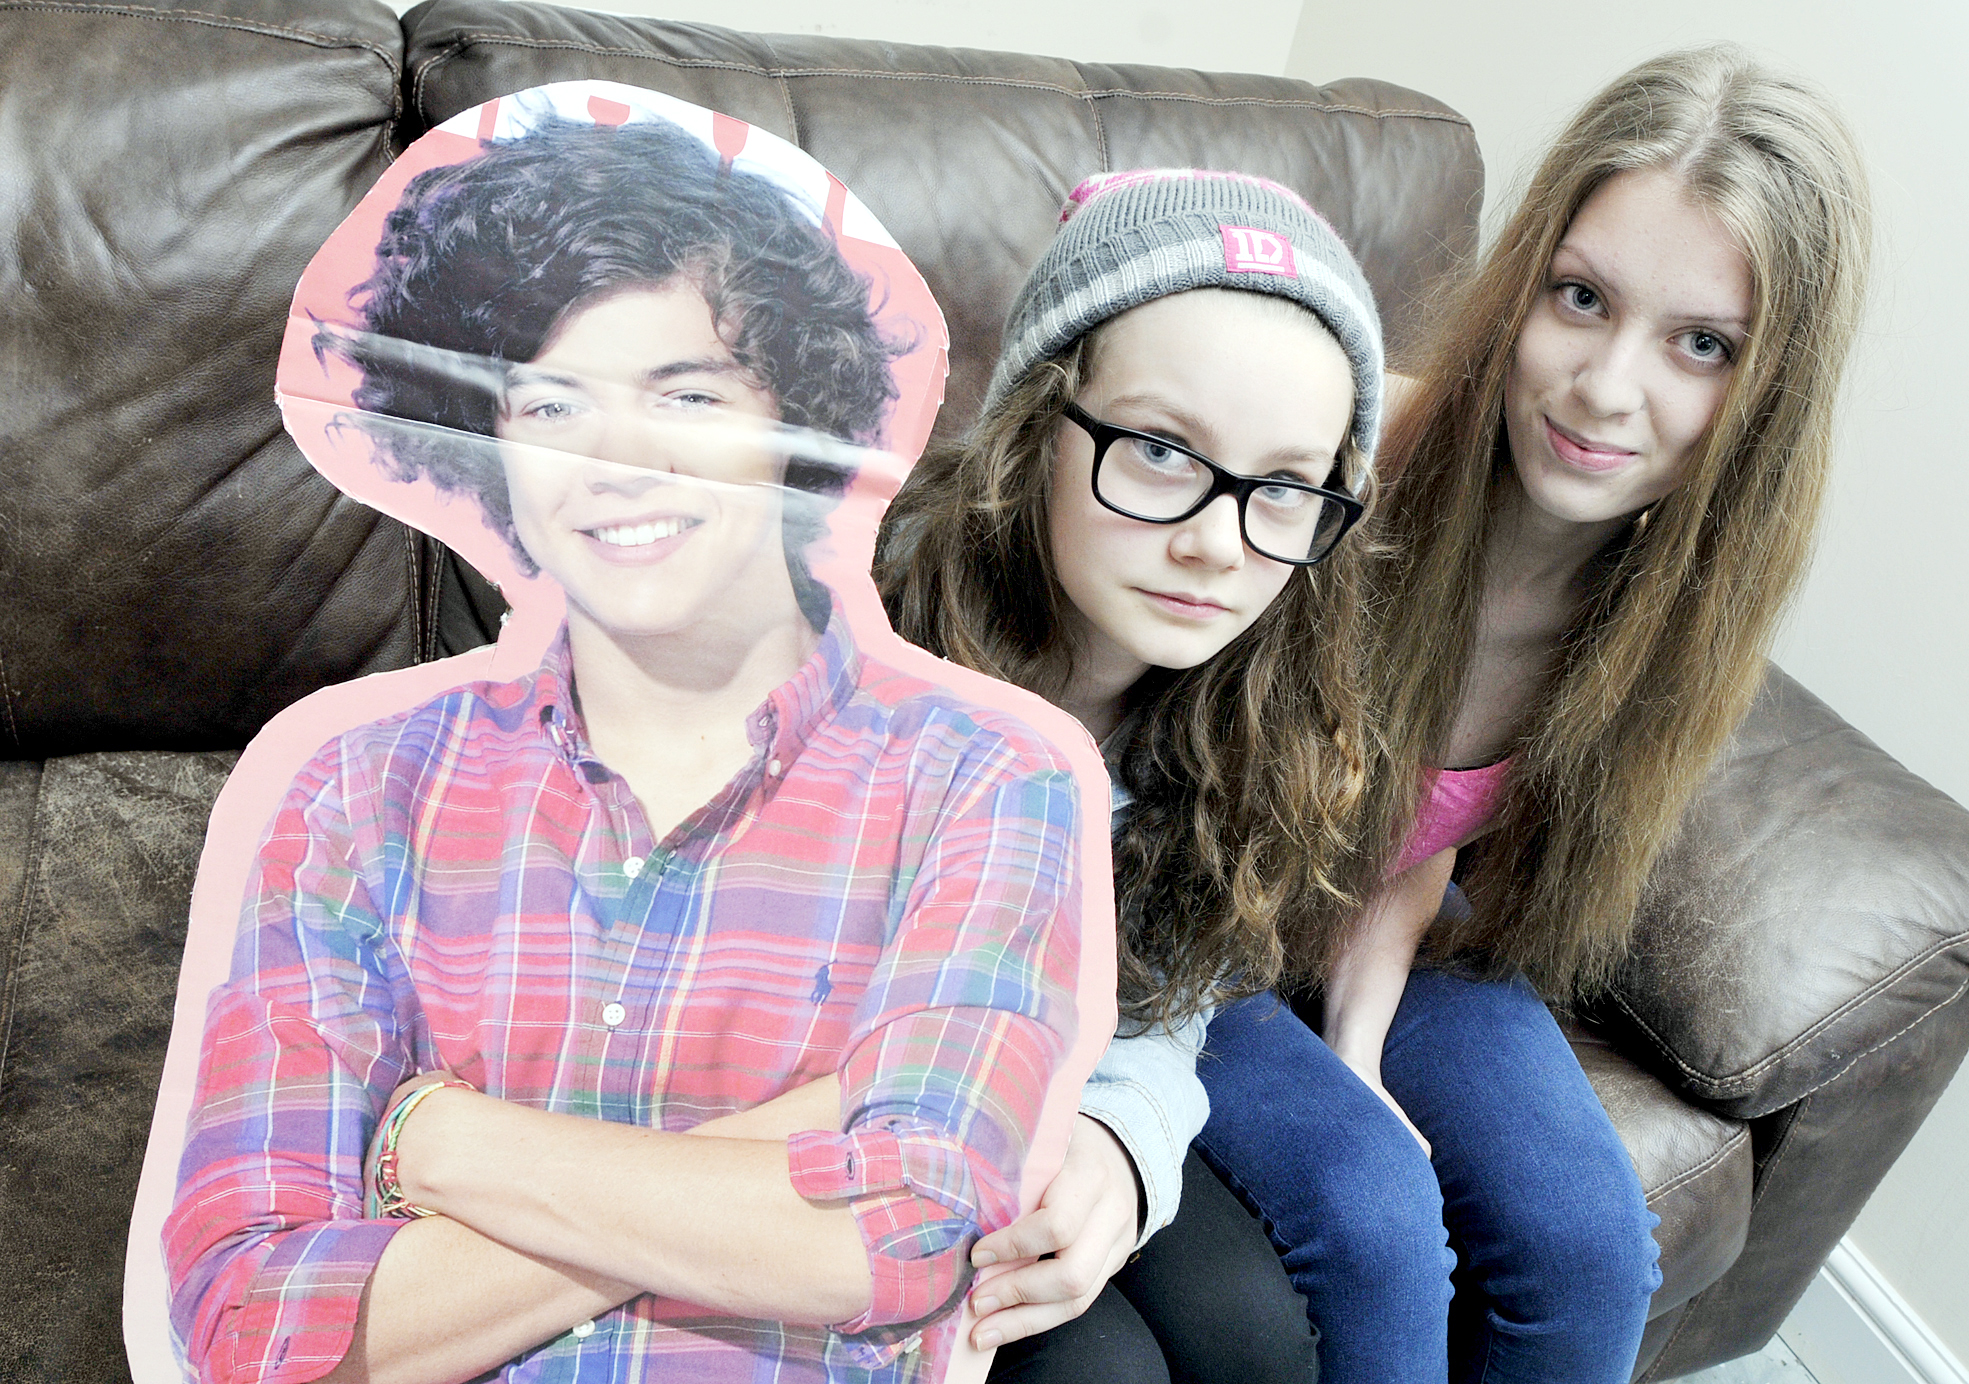 Girls gutted as One Direction ticket deal collapses